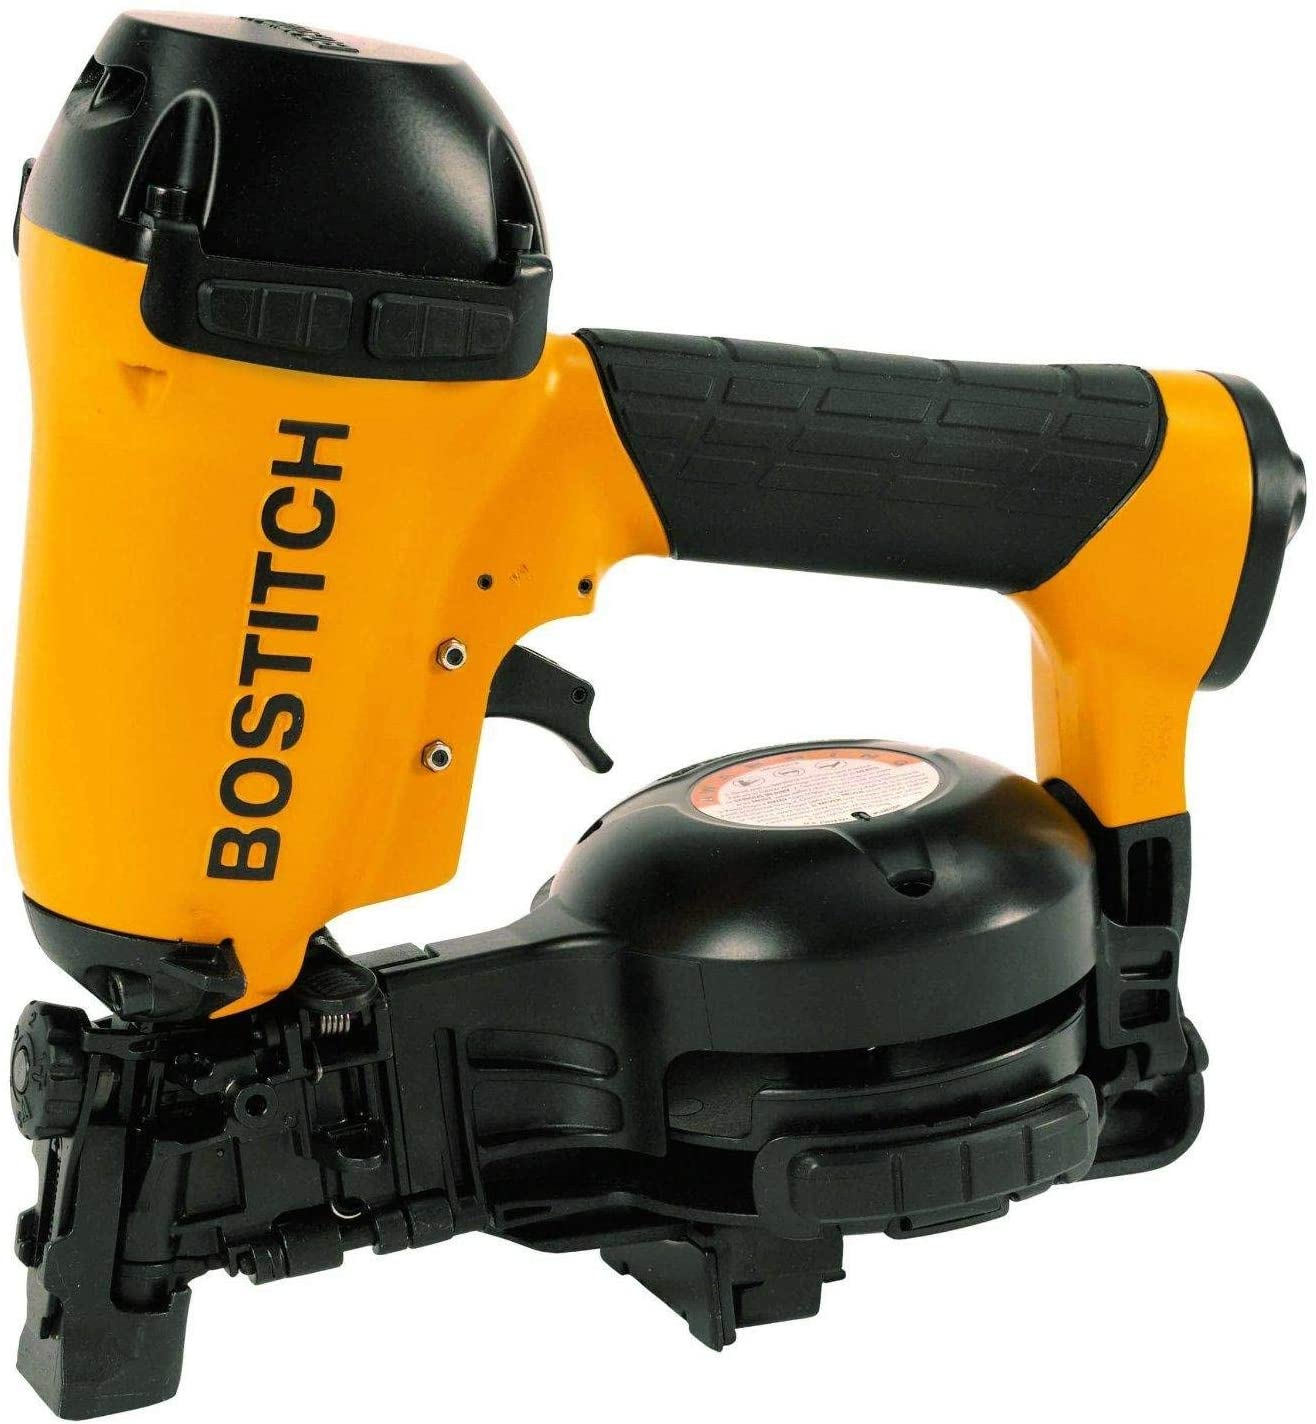 BOSTITCH-RN46-1-4-Inch-Roofing-Nailer